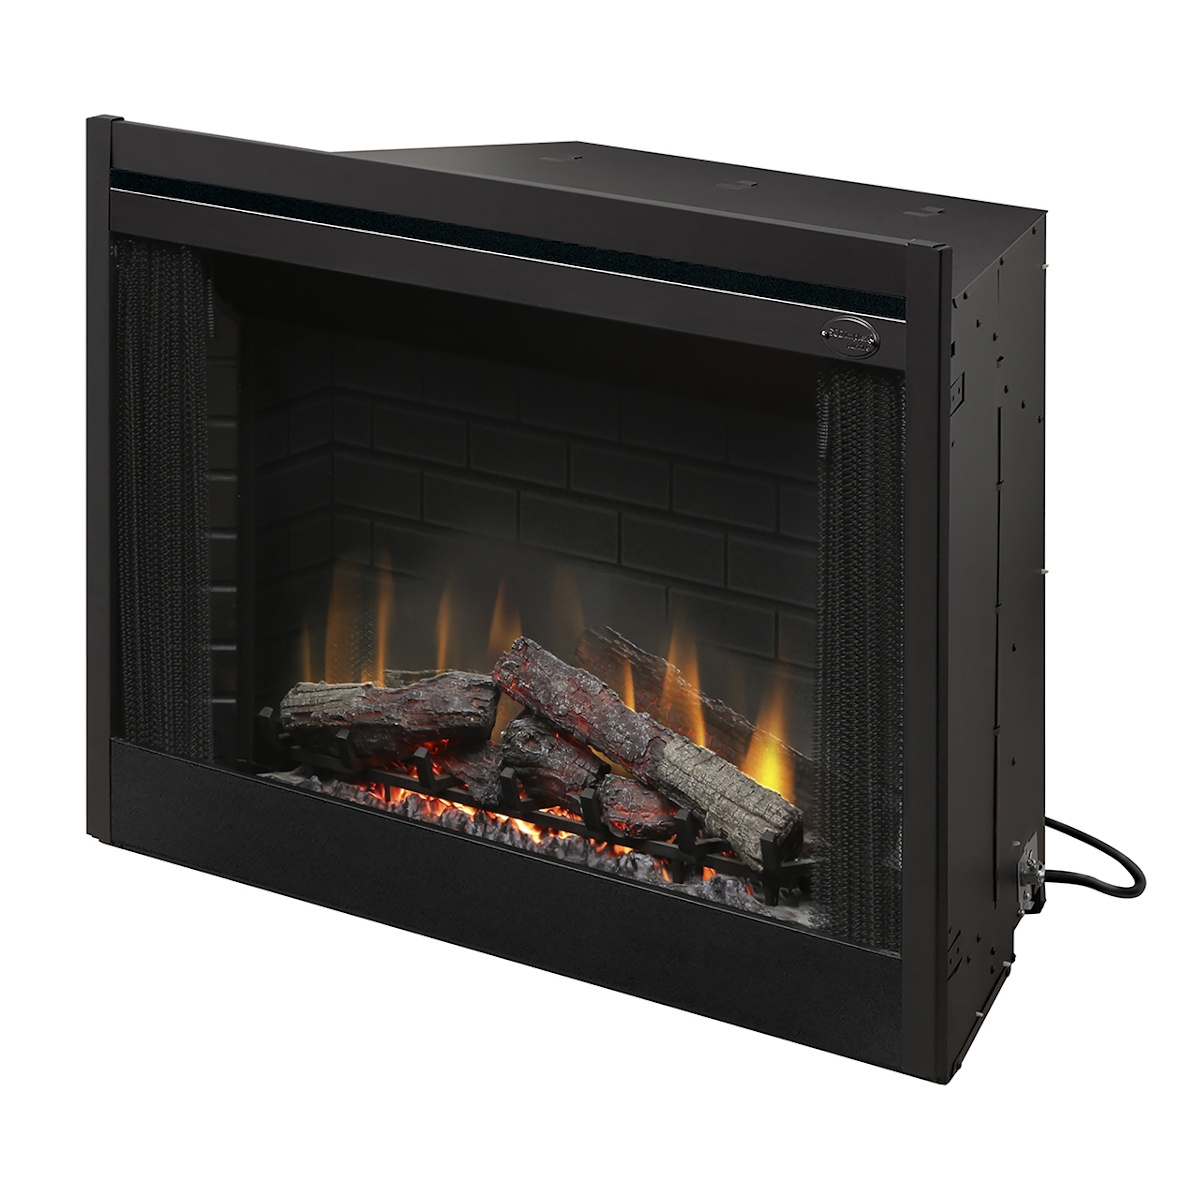 Electric Fireplace Insert 45dxp, How To Pick An Electric Fireplace Insert